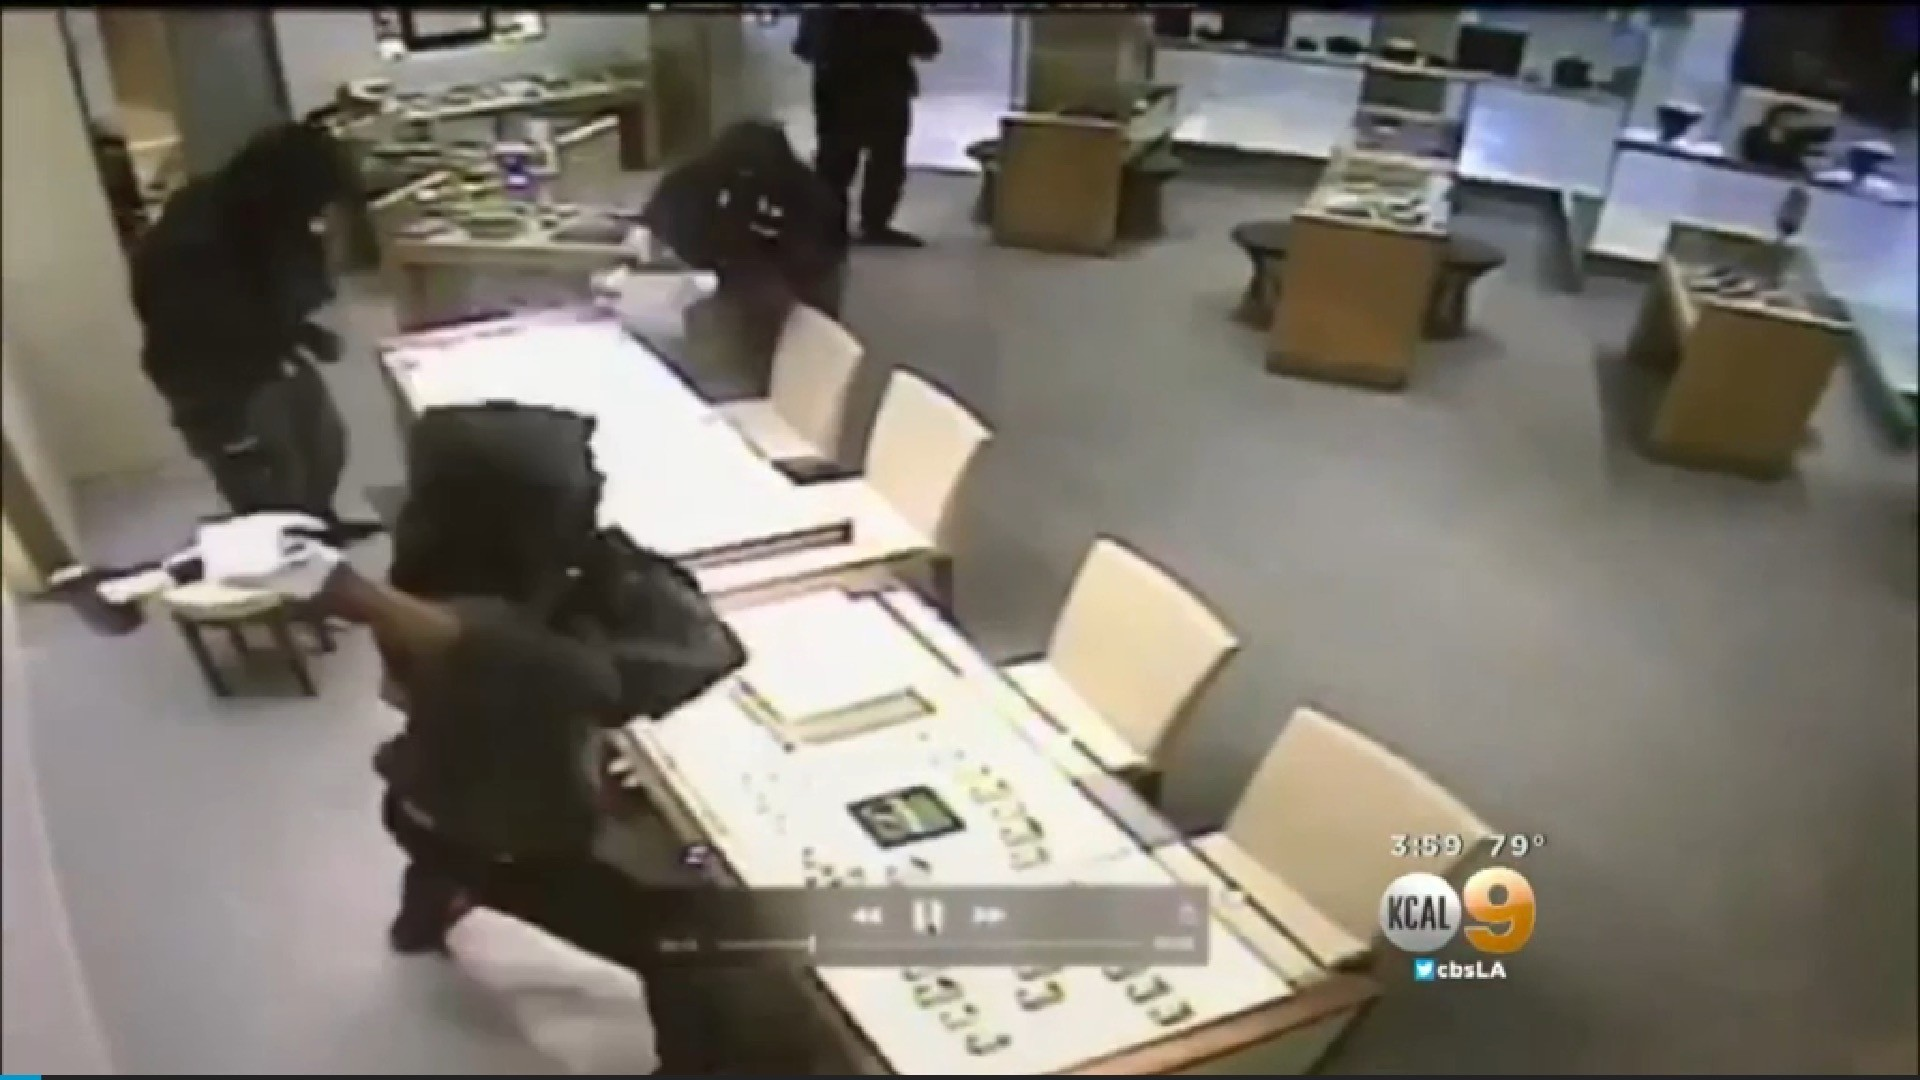 Police search for 4 armed robbery suspects seen on camera for Jewelry store mission viejo